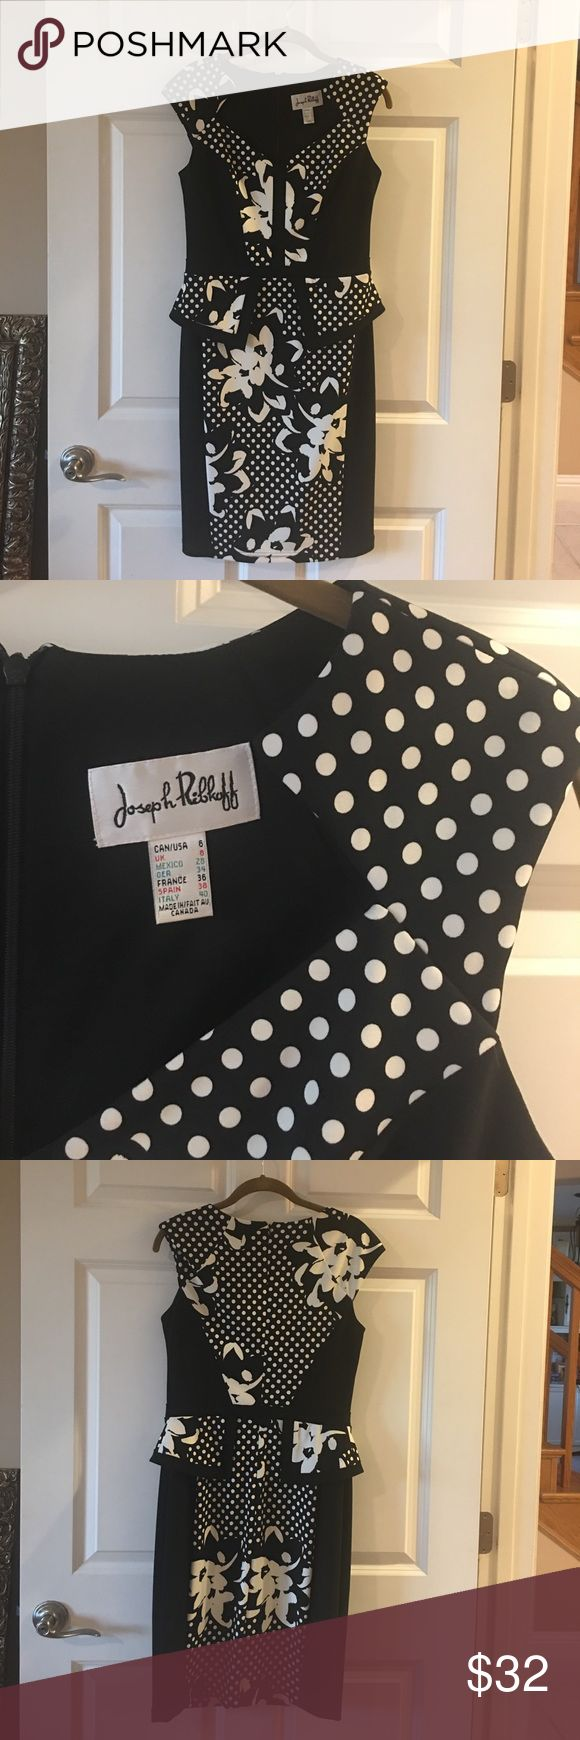 Black and white professional attire dress Perfect for an afternoon tea or a business presentation or power meeting. Joseph Ribkoff quality cut and material make this a memorable and classy pick! True size 6. joseph ribkoff  Dresses Midi